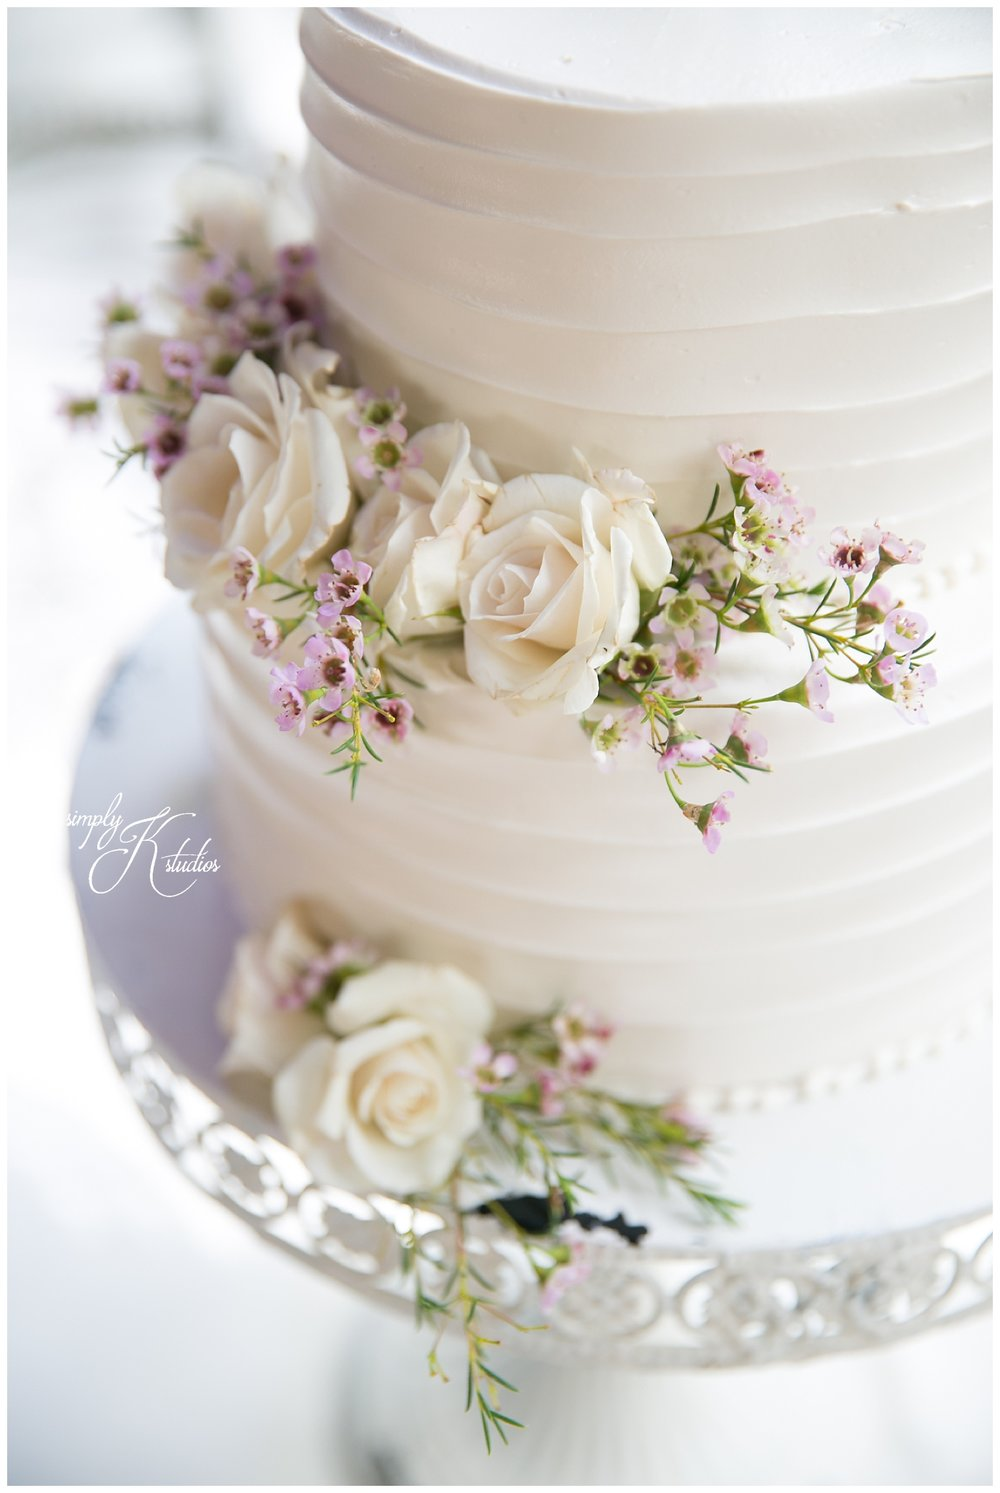 Flowers on a Wedding Cake.jpg